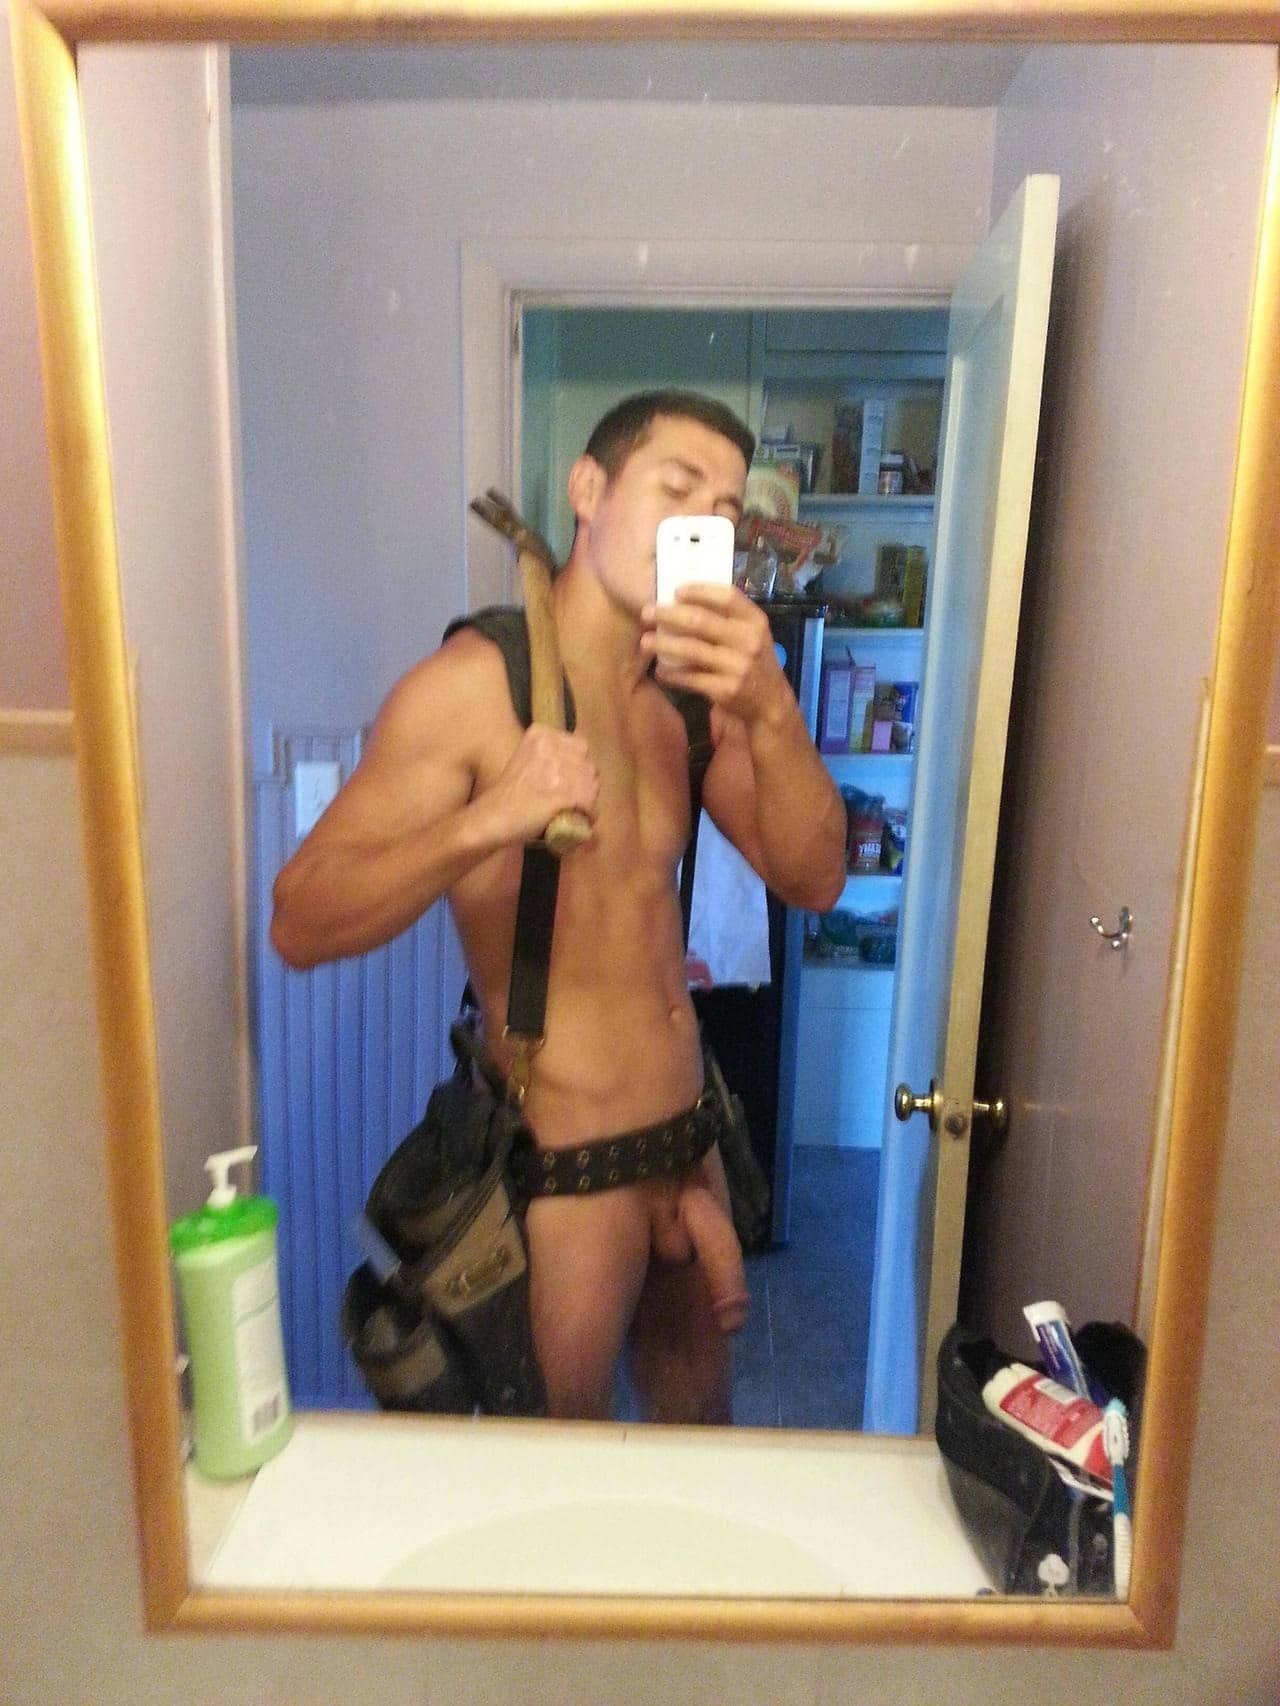 Hot Guy Shows A Hung Dick